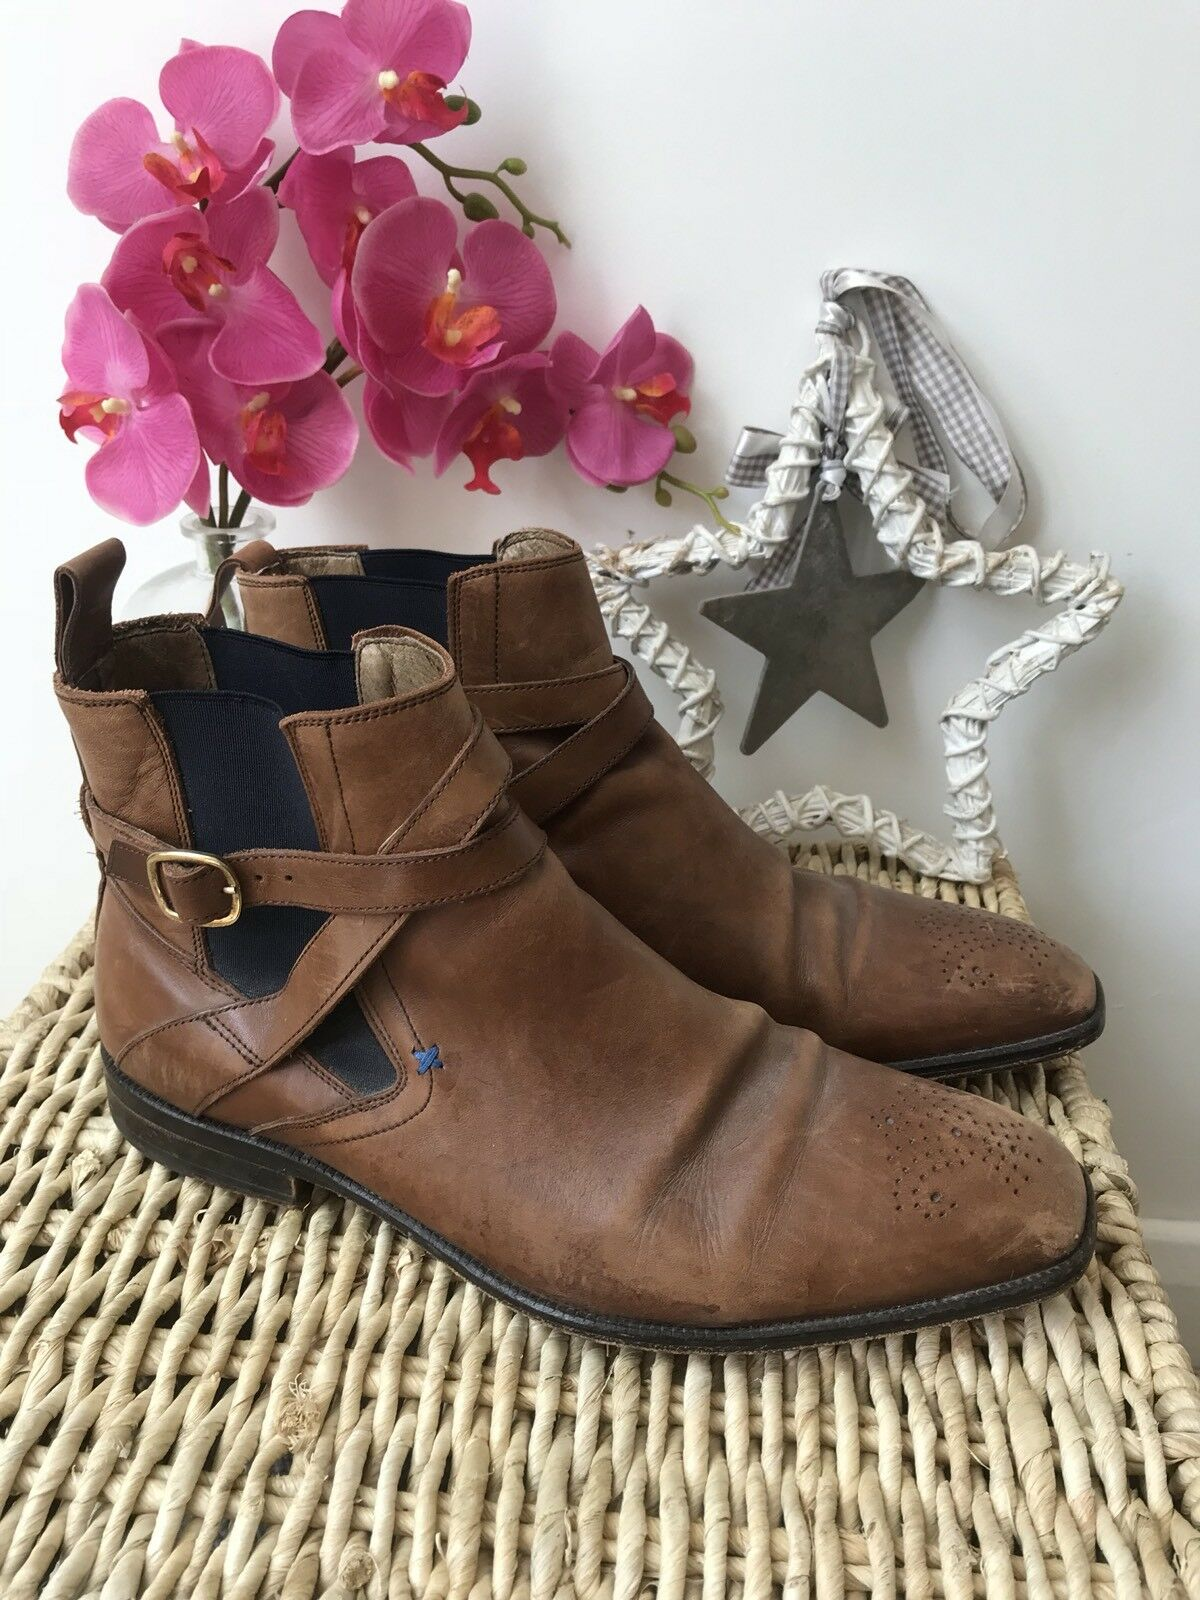 Reiss Size 8 Tan Leather Brown Boots Casual Daytime Smart Pull On Chelsea Boots